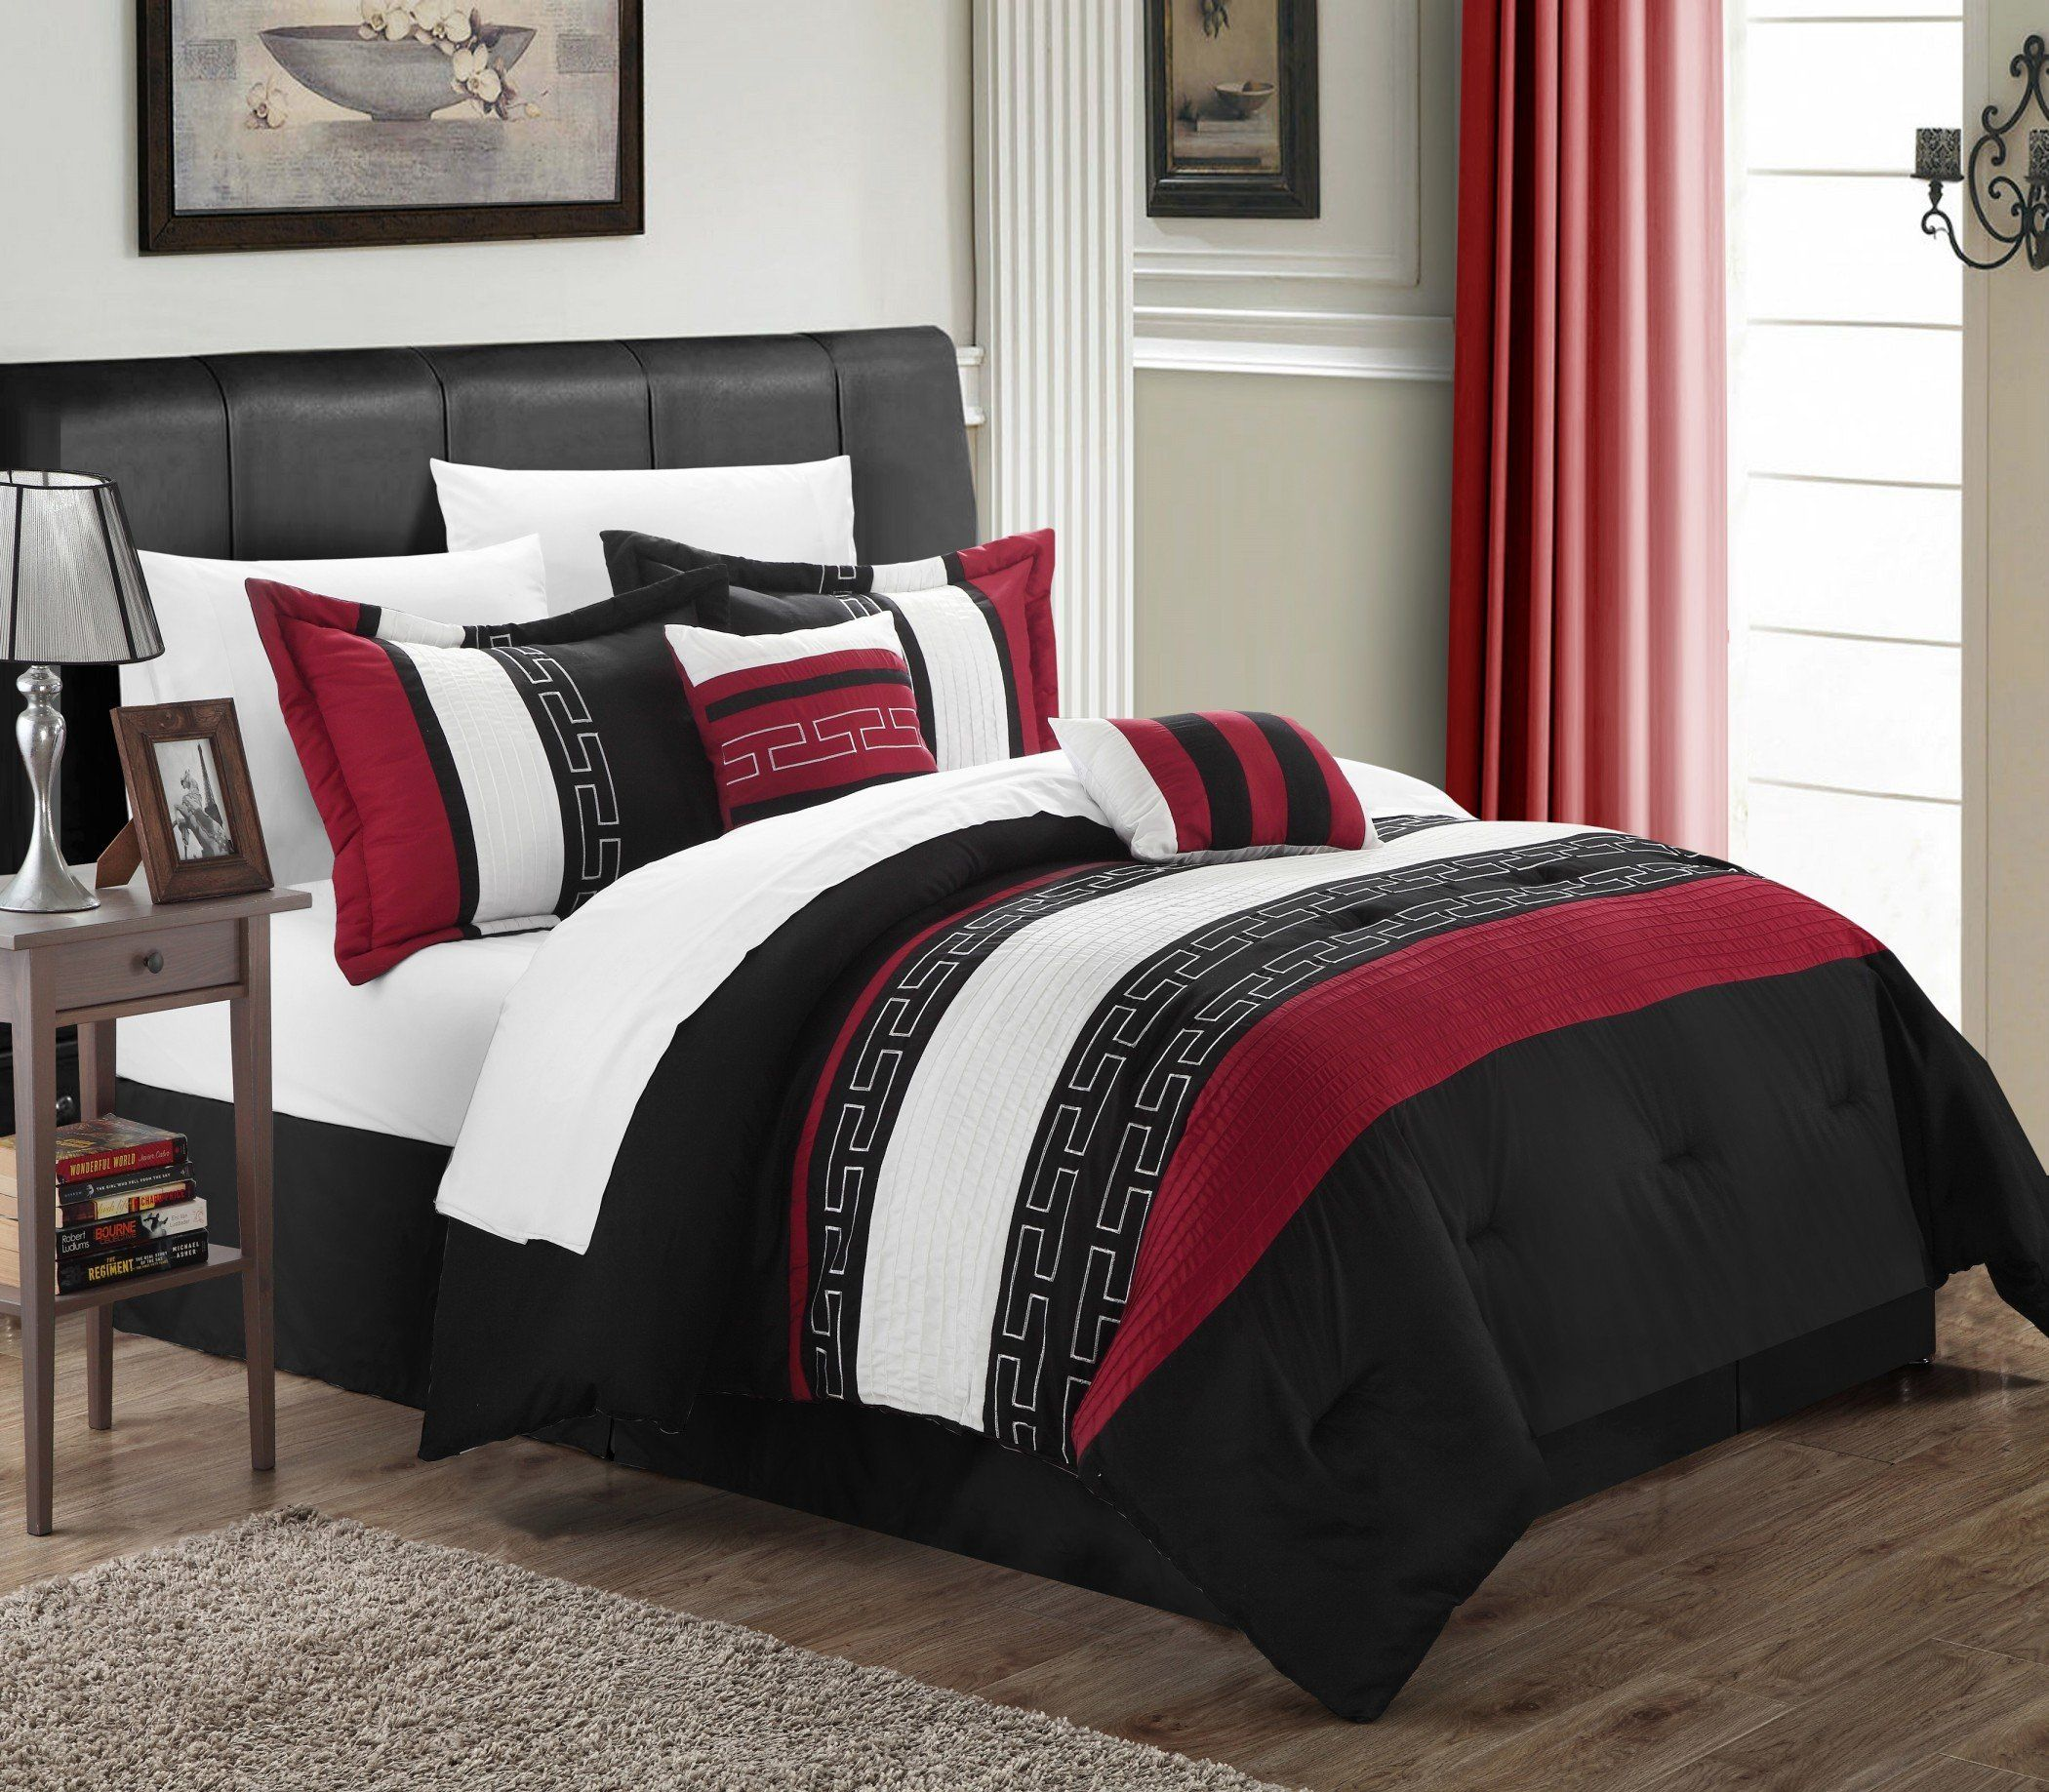 Chic Home Carlton 10 Piece Comforter Set Embroidered